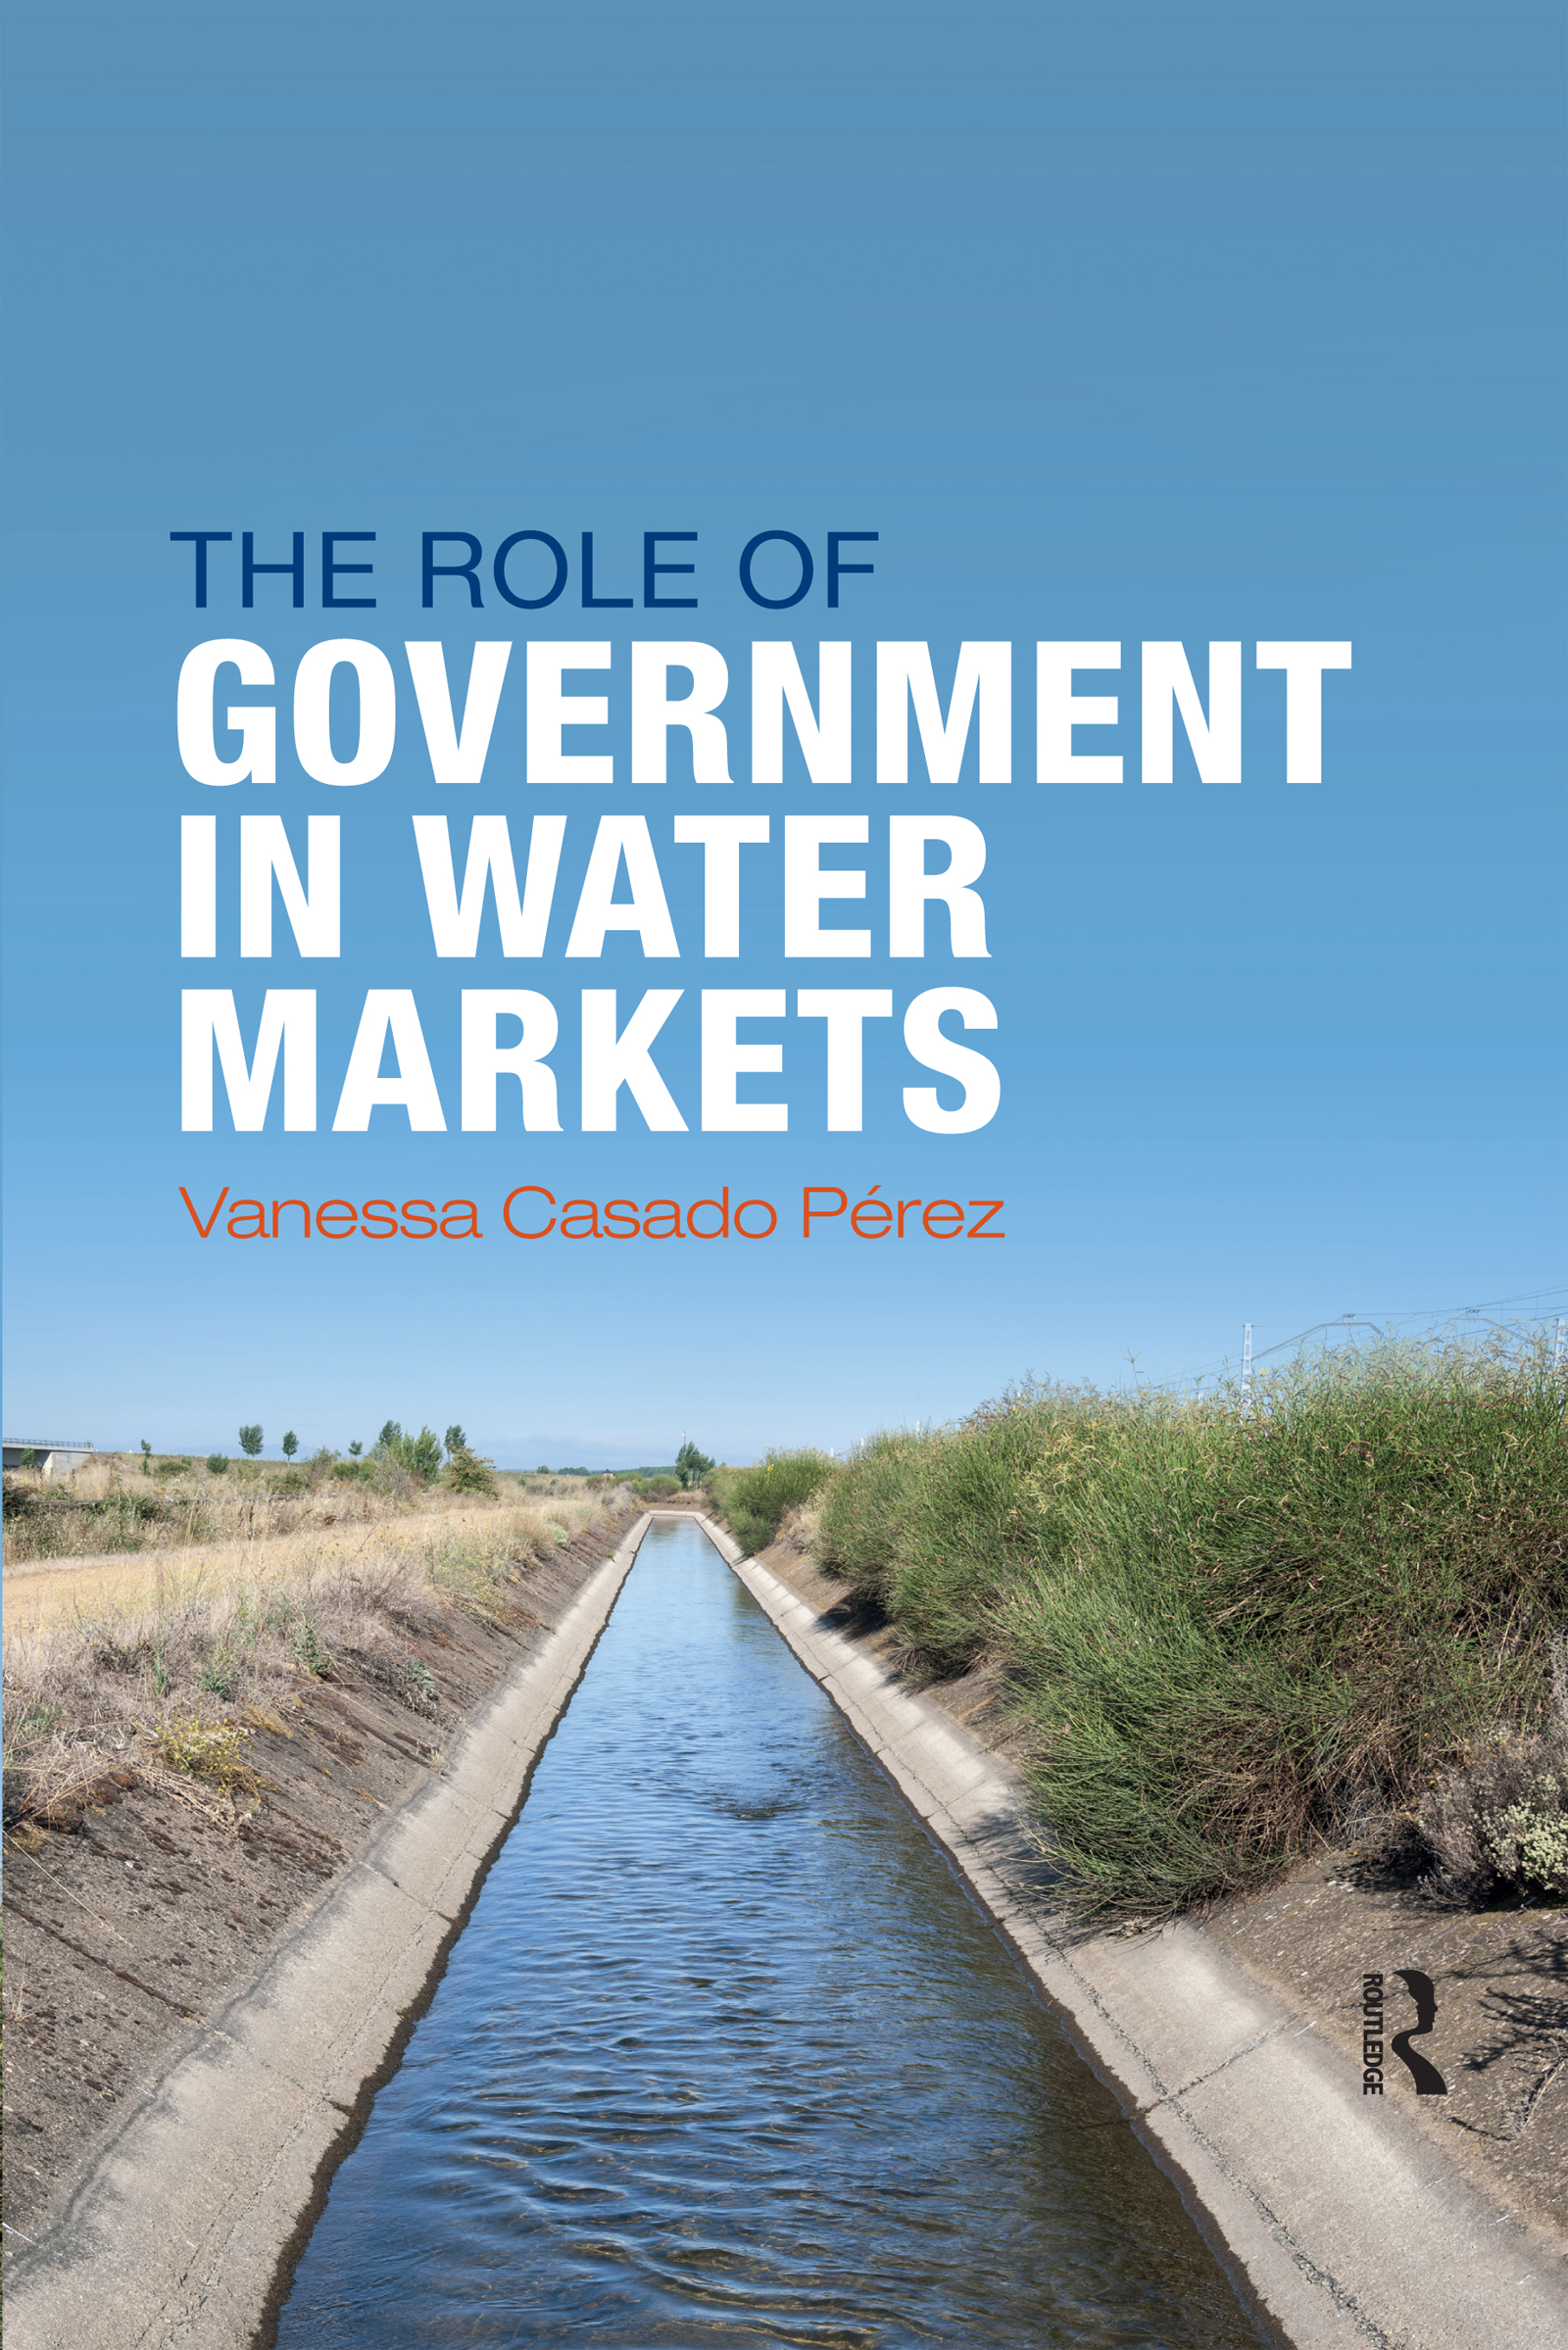 The Role of Government in Water Markets